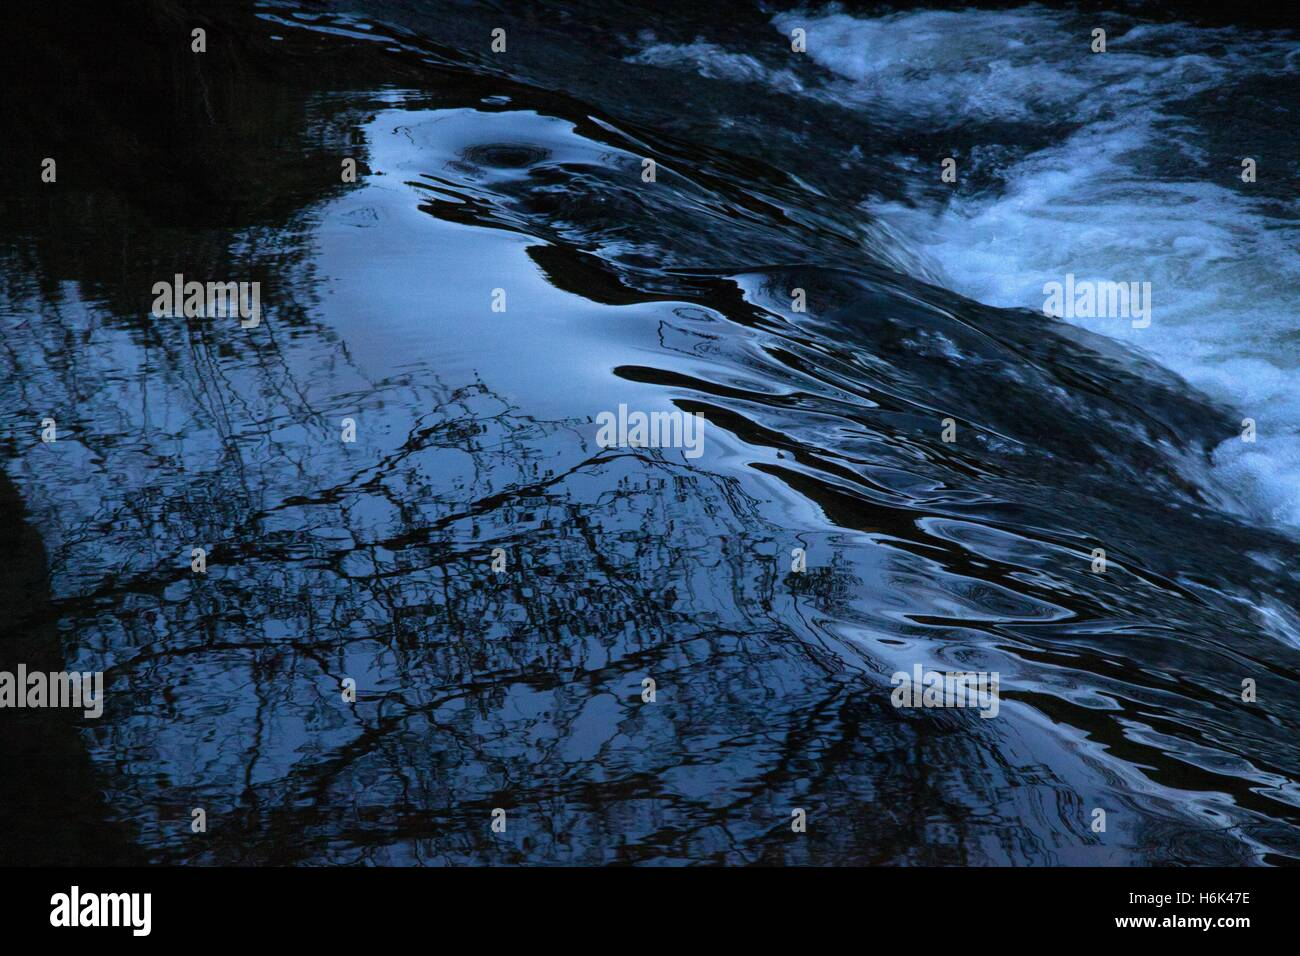 Dark blue black water passing over a weir Stock Photo